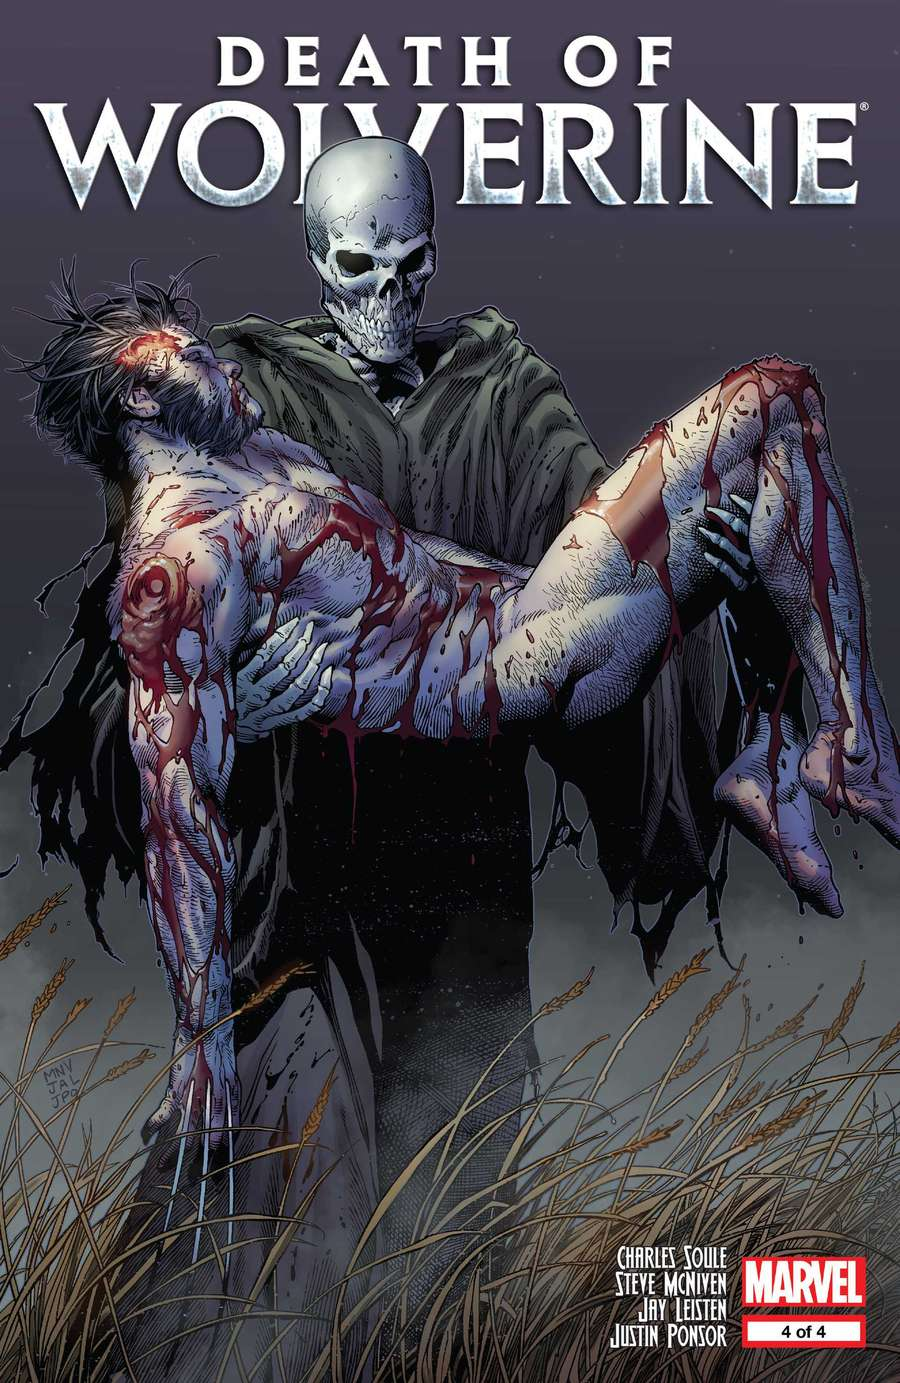 The Death of Wolverine #4 (ComicsReview)